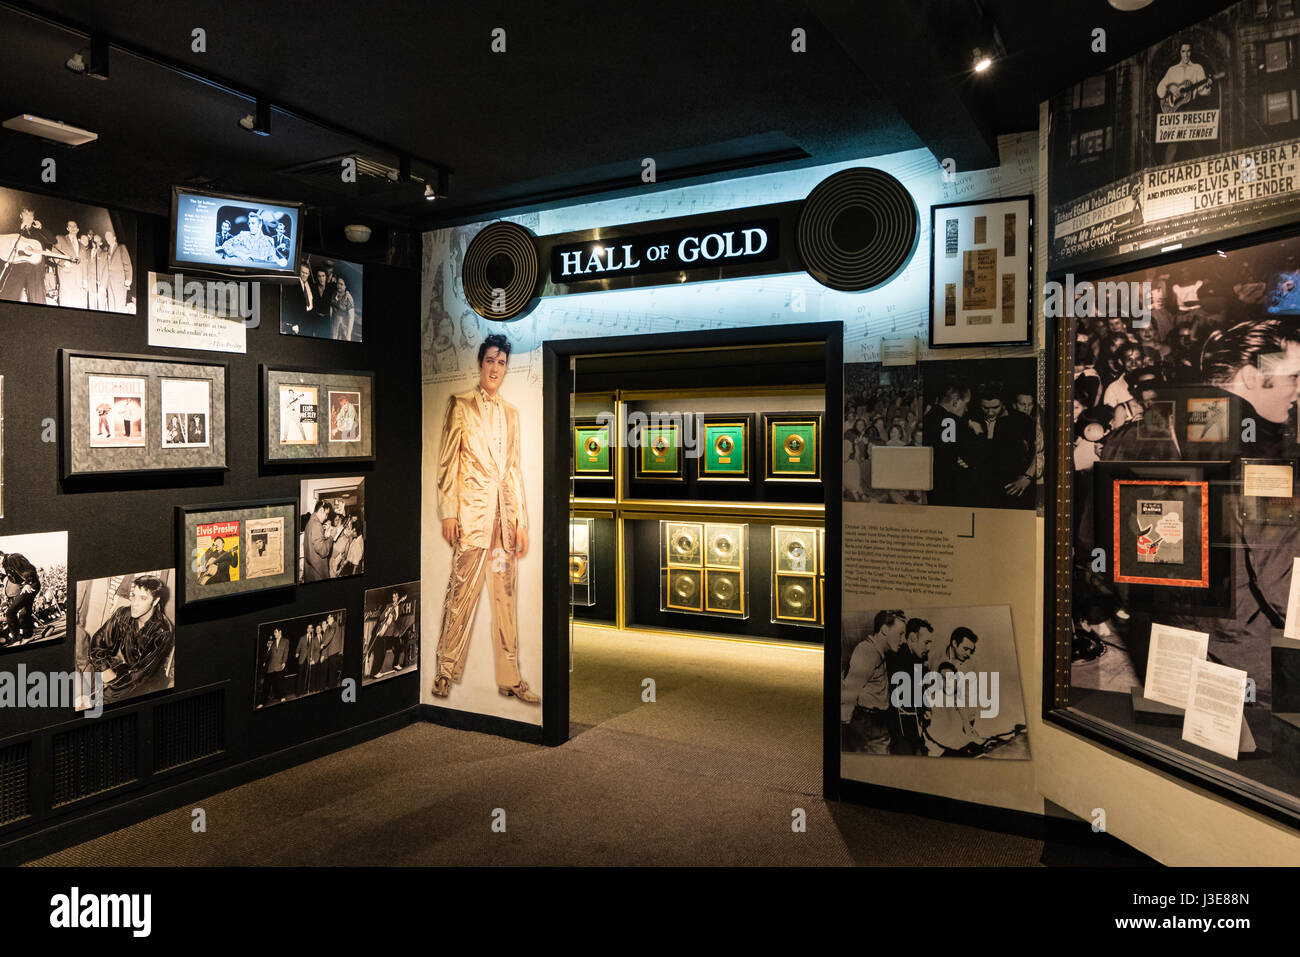 The Hall of Gold at Graceland, Memphis - Stock Image